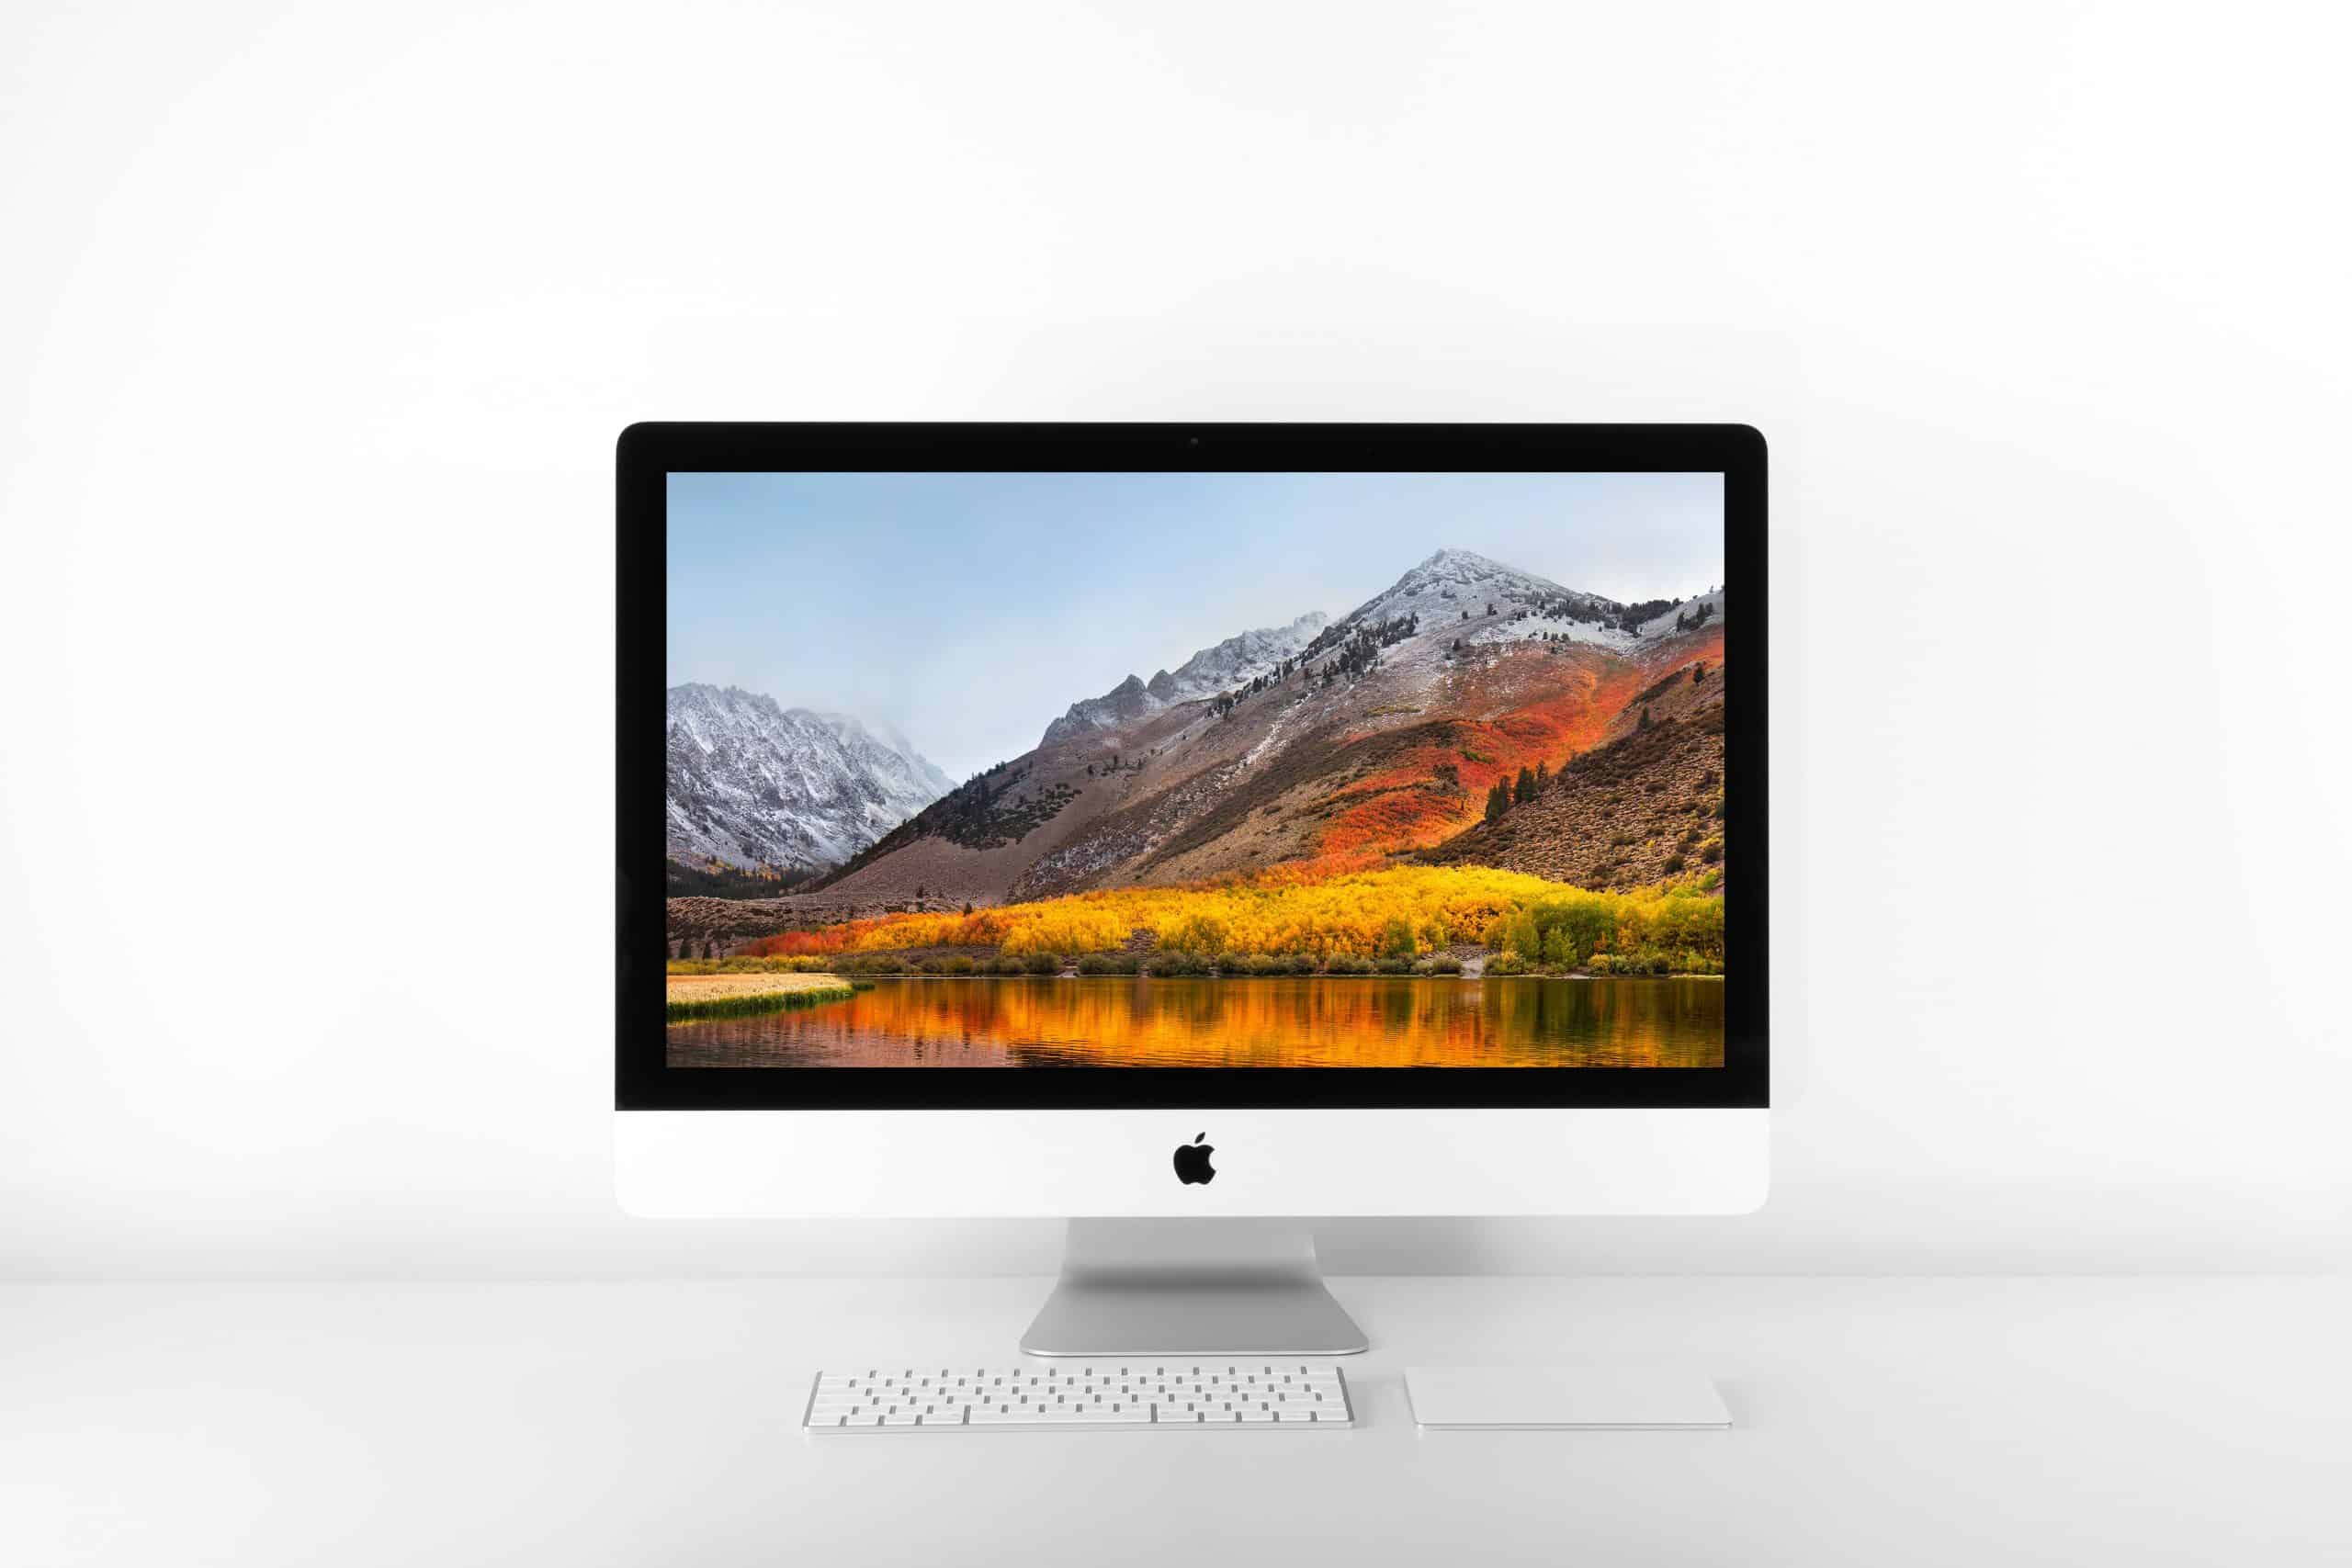 imac-2014-21-inch-mf883-laptopvang.com